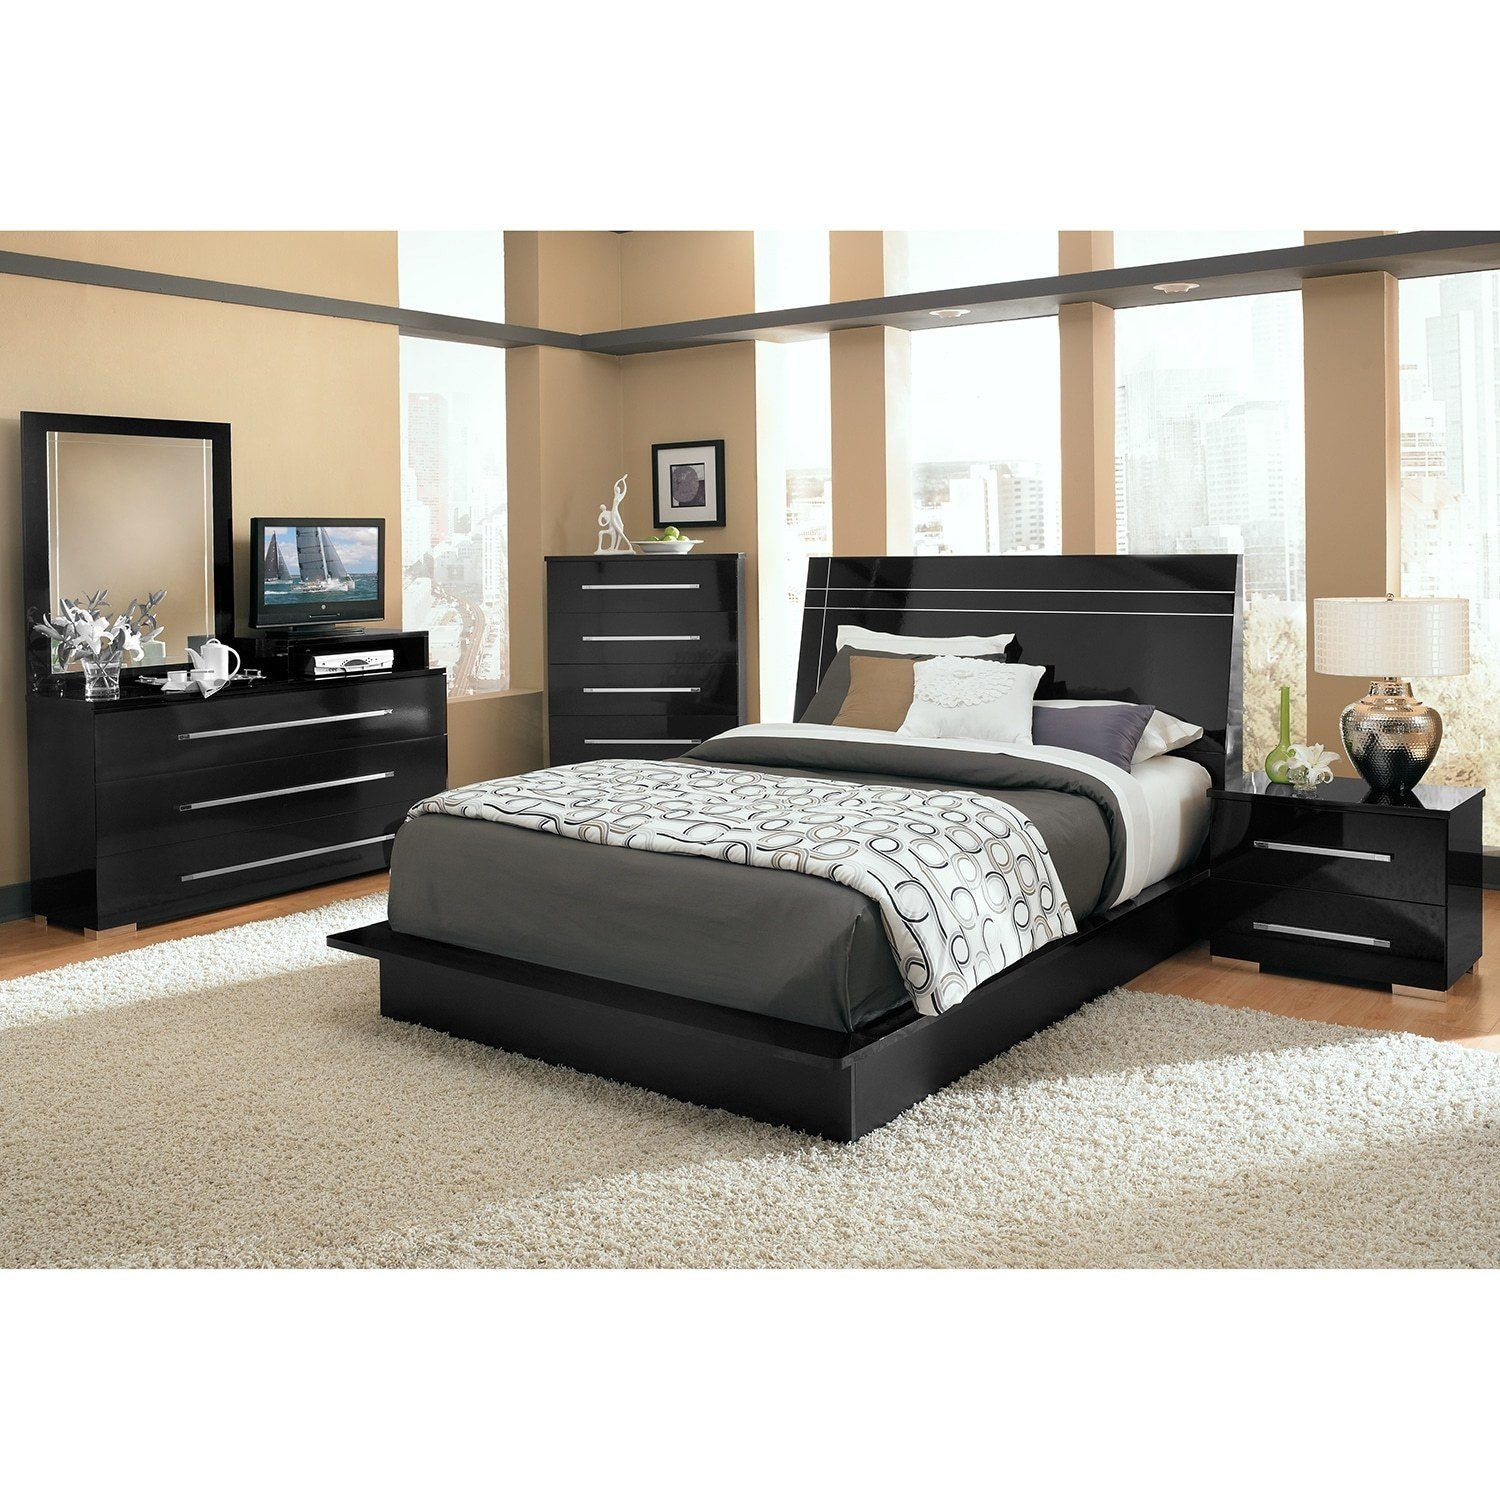 Best Dimora Queen Panel Bed Black American Signature Furniture With Pictures